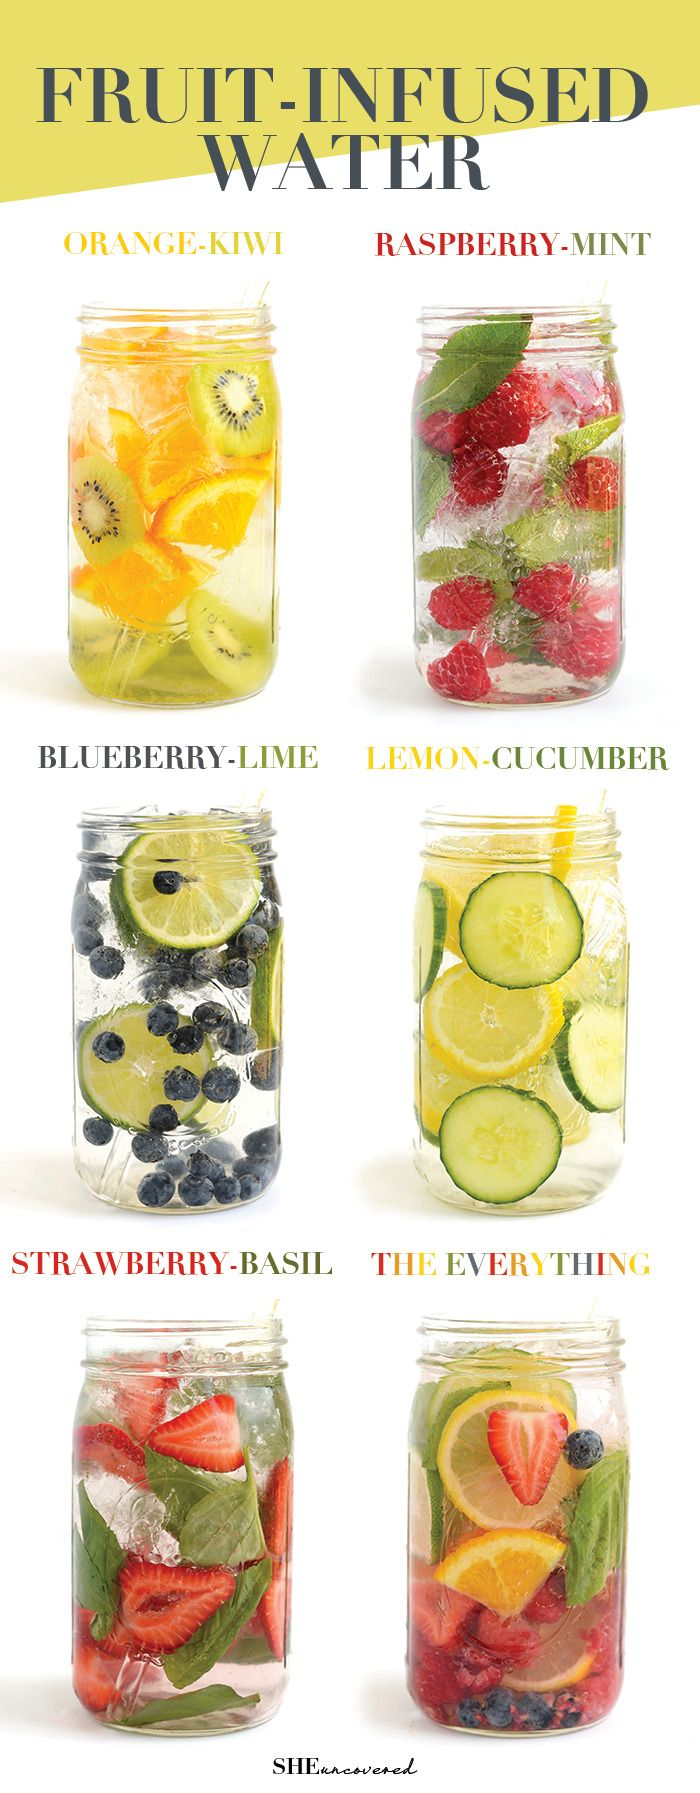 DIY Fruit and Herb Infused Water Make these 6 cheap alternatives to soda with simple DIY Fruit and Herb Infused Recipes. • Orange Kiwi • Raspberry Mint • Blueberry Lime • Lemon Cucumber • Strawberry Basil • Orange, Kiwi, Raspberry, Blueberry, Lemon,... #luci